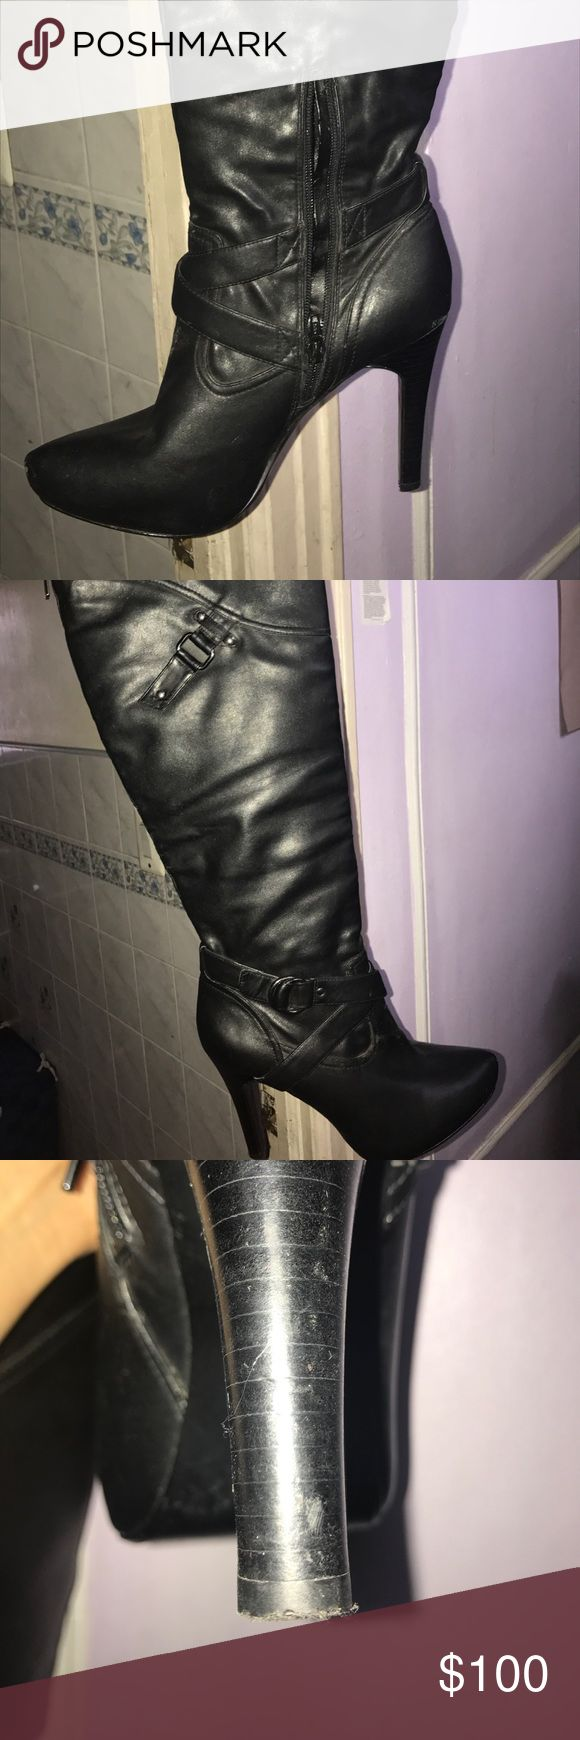 Thigh high leather boots Do Not Buy!!!!!!!   These are on hold Thigh high leather boots purchase 3 years ago.   These are my still my fav boots but can no longer wear heels due to health. Looking for a new home they were worn 3xs price negotiable lil scuff on the toe that can easily be fixed heel is in great condition and zipper is perfect.   Make me an offer I can't refuse.  Zipper on the side and along the top of the back Guess Shoes Heels